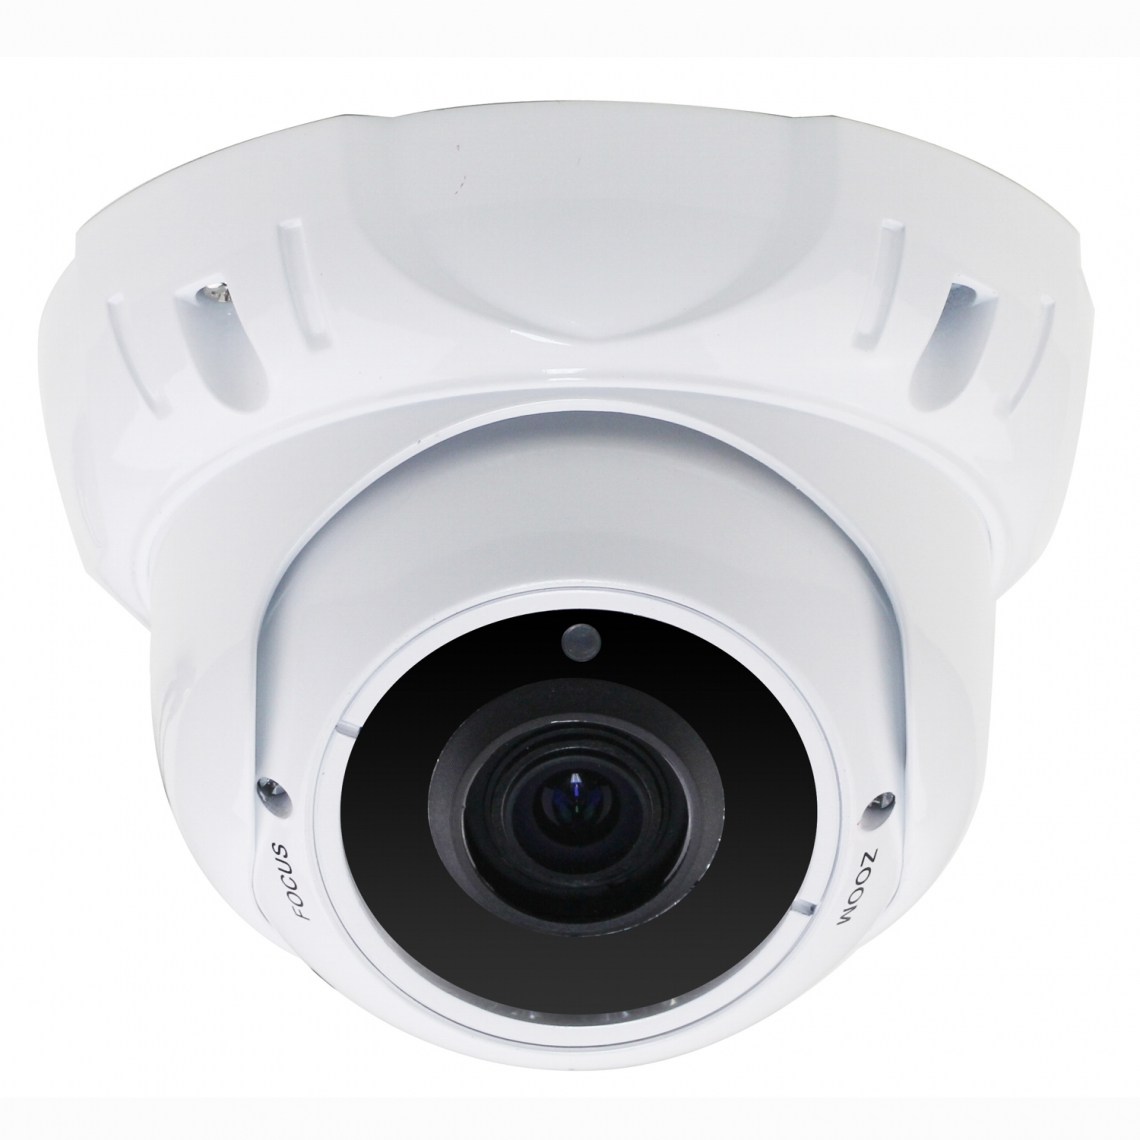 AHD DOME CAMERA VARIFOCAL - TVT73VFAHD